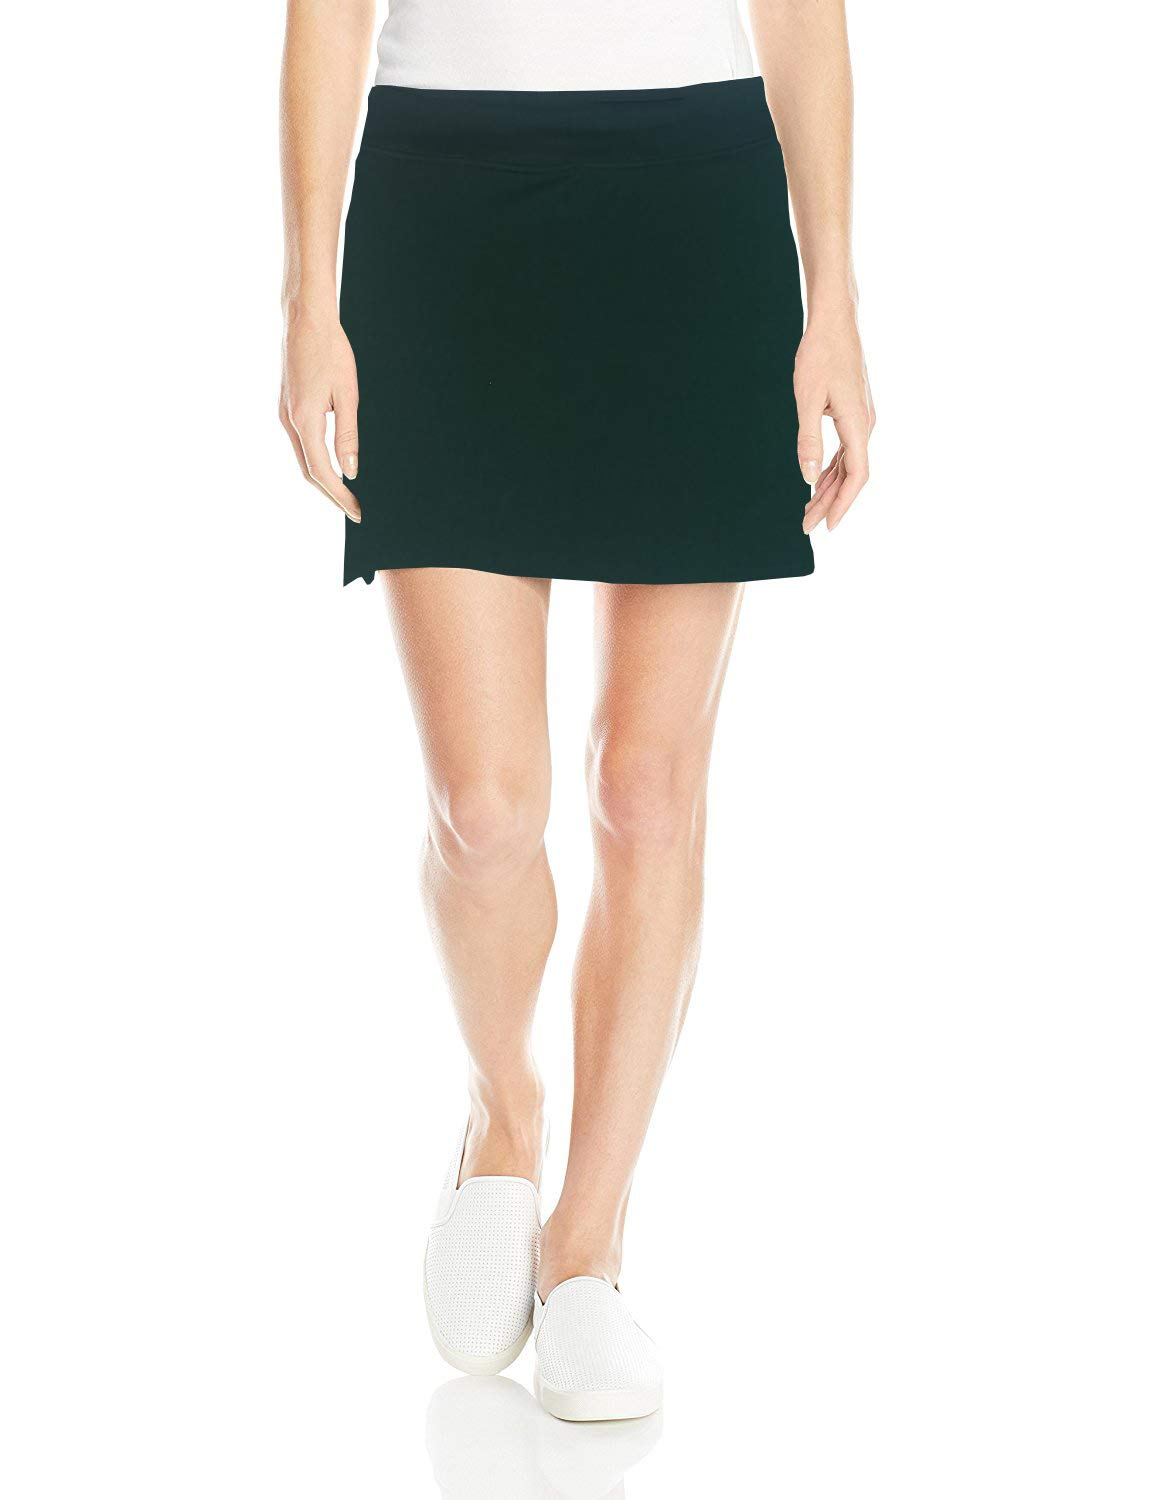 Colorado Clothing Women's Everyday Skort (Holly, Small) by Colorado Clothing